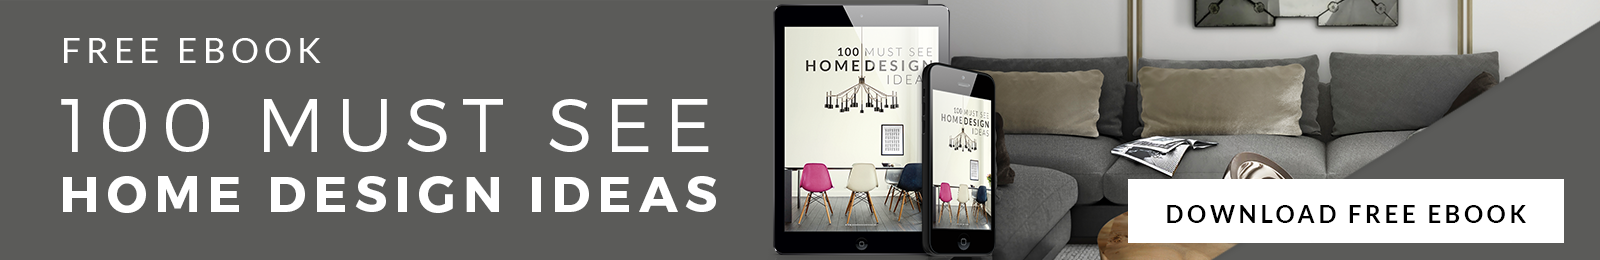 ebook home design ideas